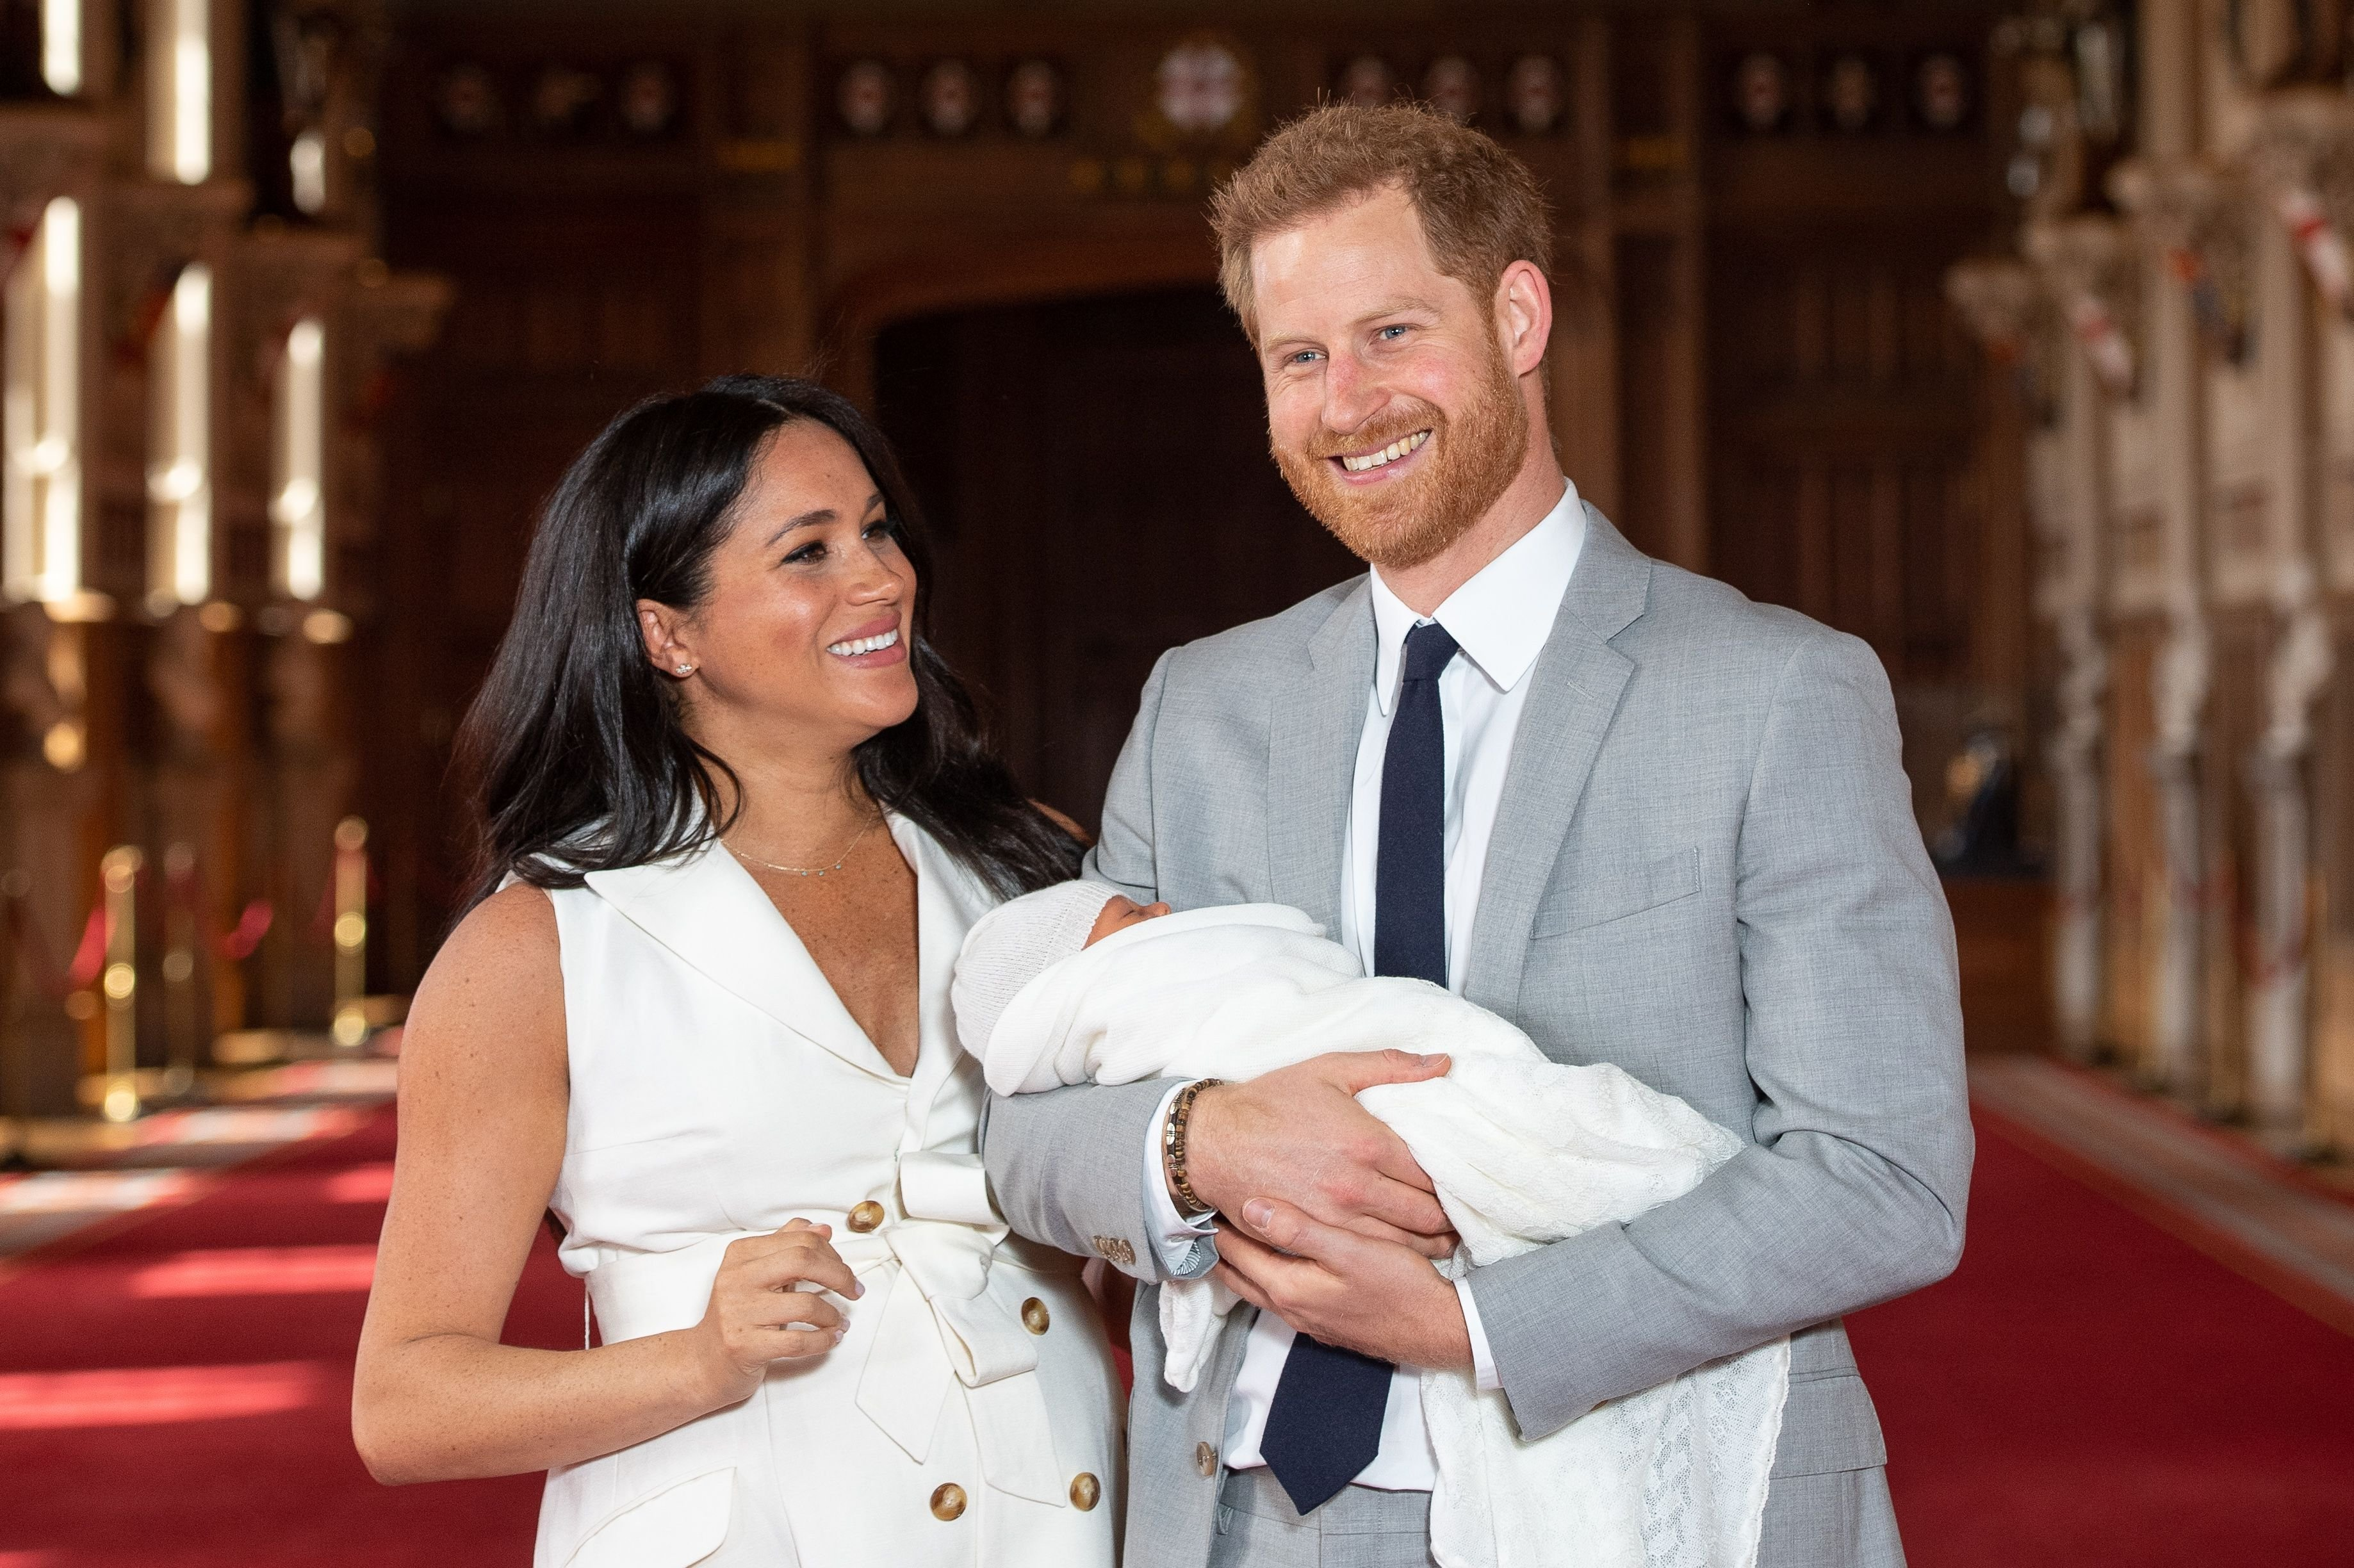 Meghan Markle, Prince Harry and their son in St George's Hall at Windsor Castle on May 8, 2019 in Windsor, England | Photo: Getty Images